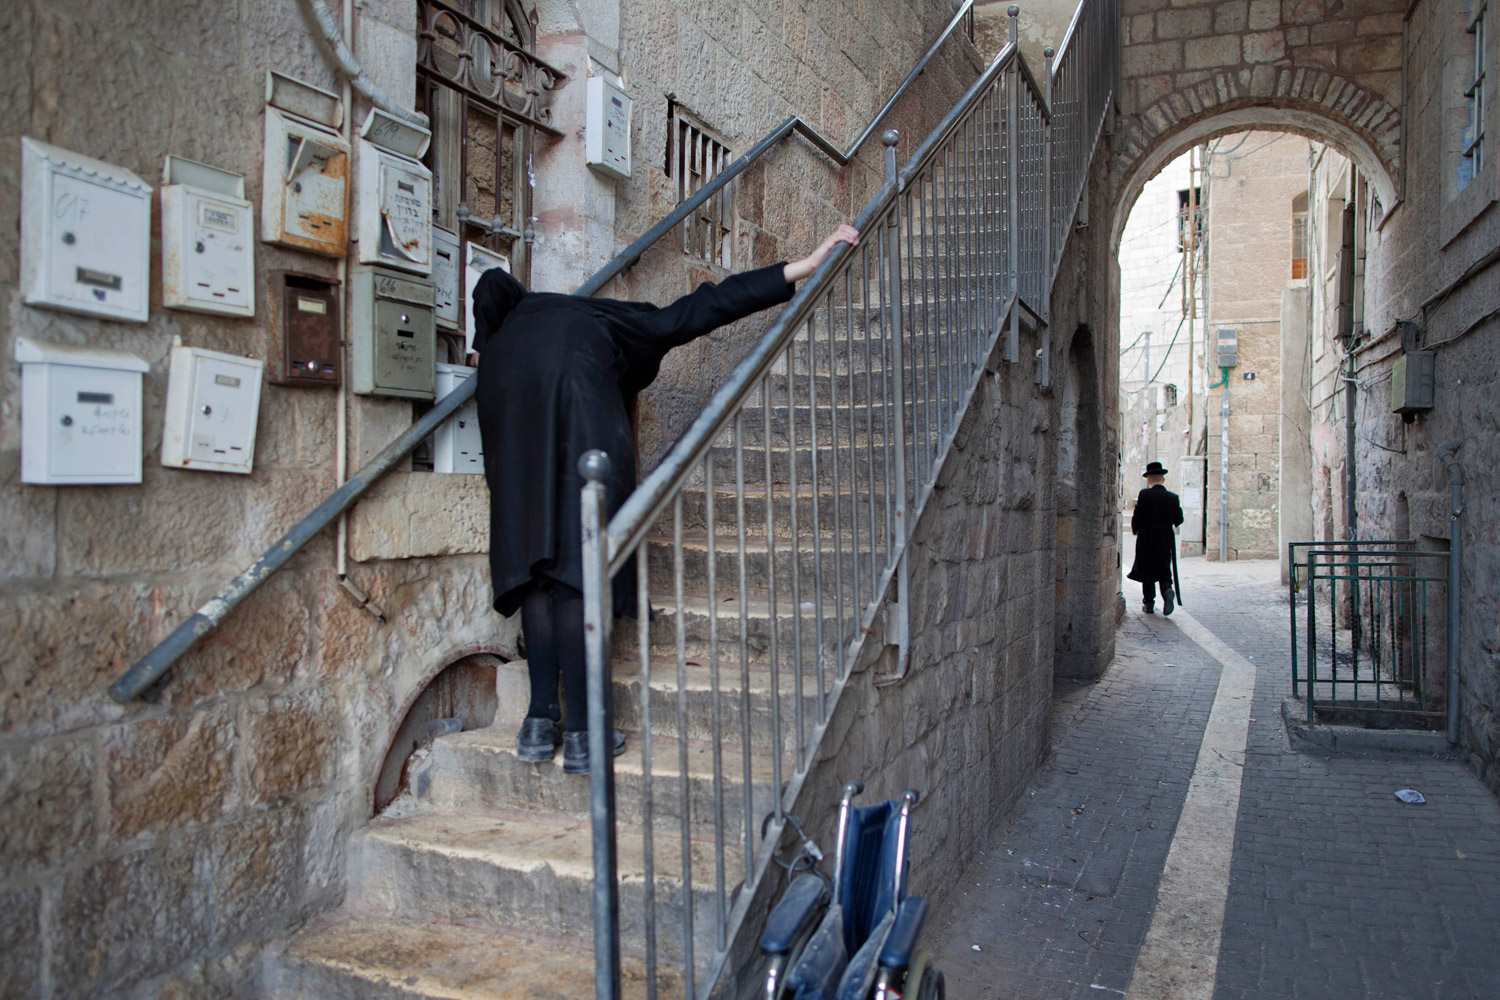 April 3, 2012. An Ultra-Orthodox Jewish man peeks into a house in the Ultra-Orthodox neighborhood of Mea Shearim in Jerusalem.